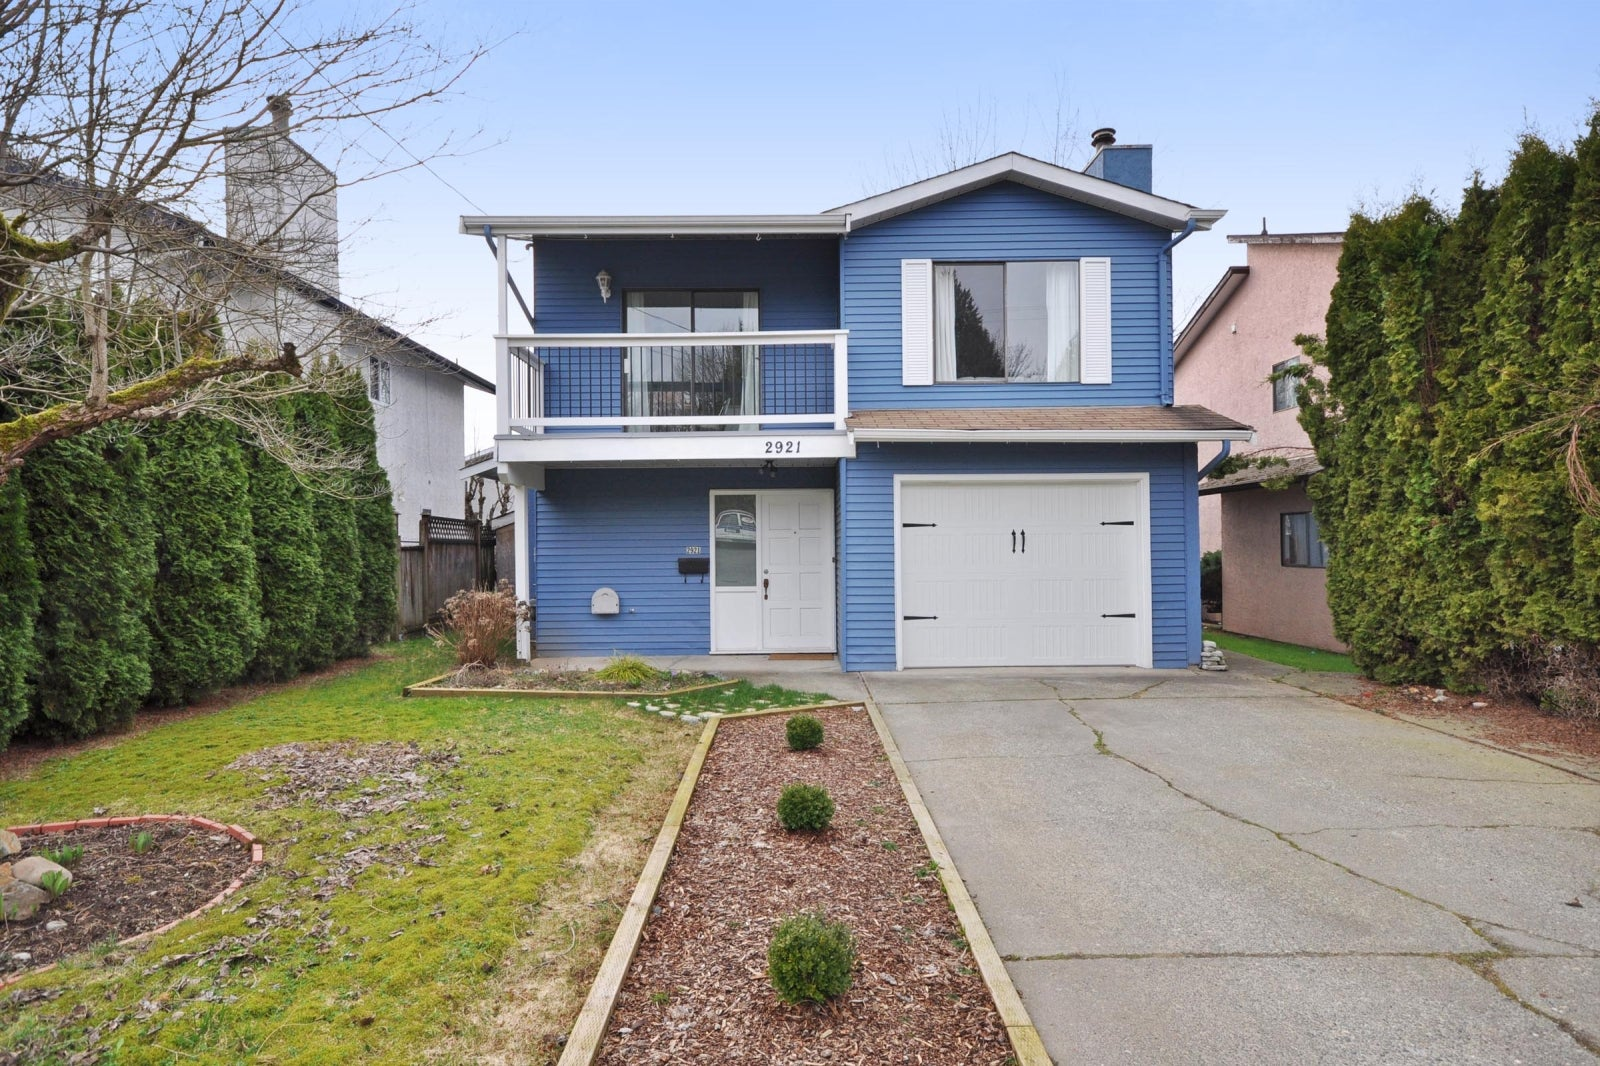 2921 BABICH STREET - Central Abbotsford House/Single Family for sale, 3 Bedrooms (R2155098) #1